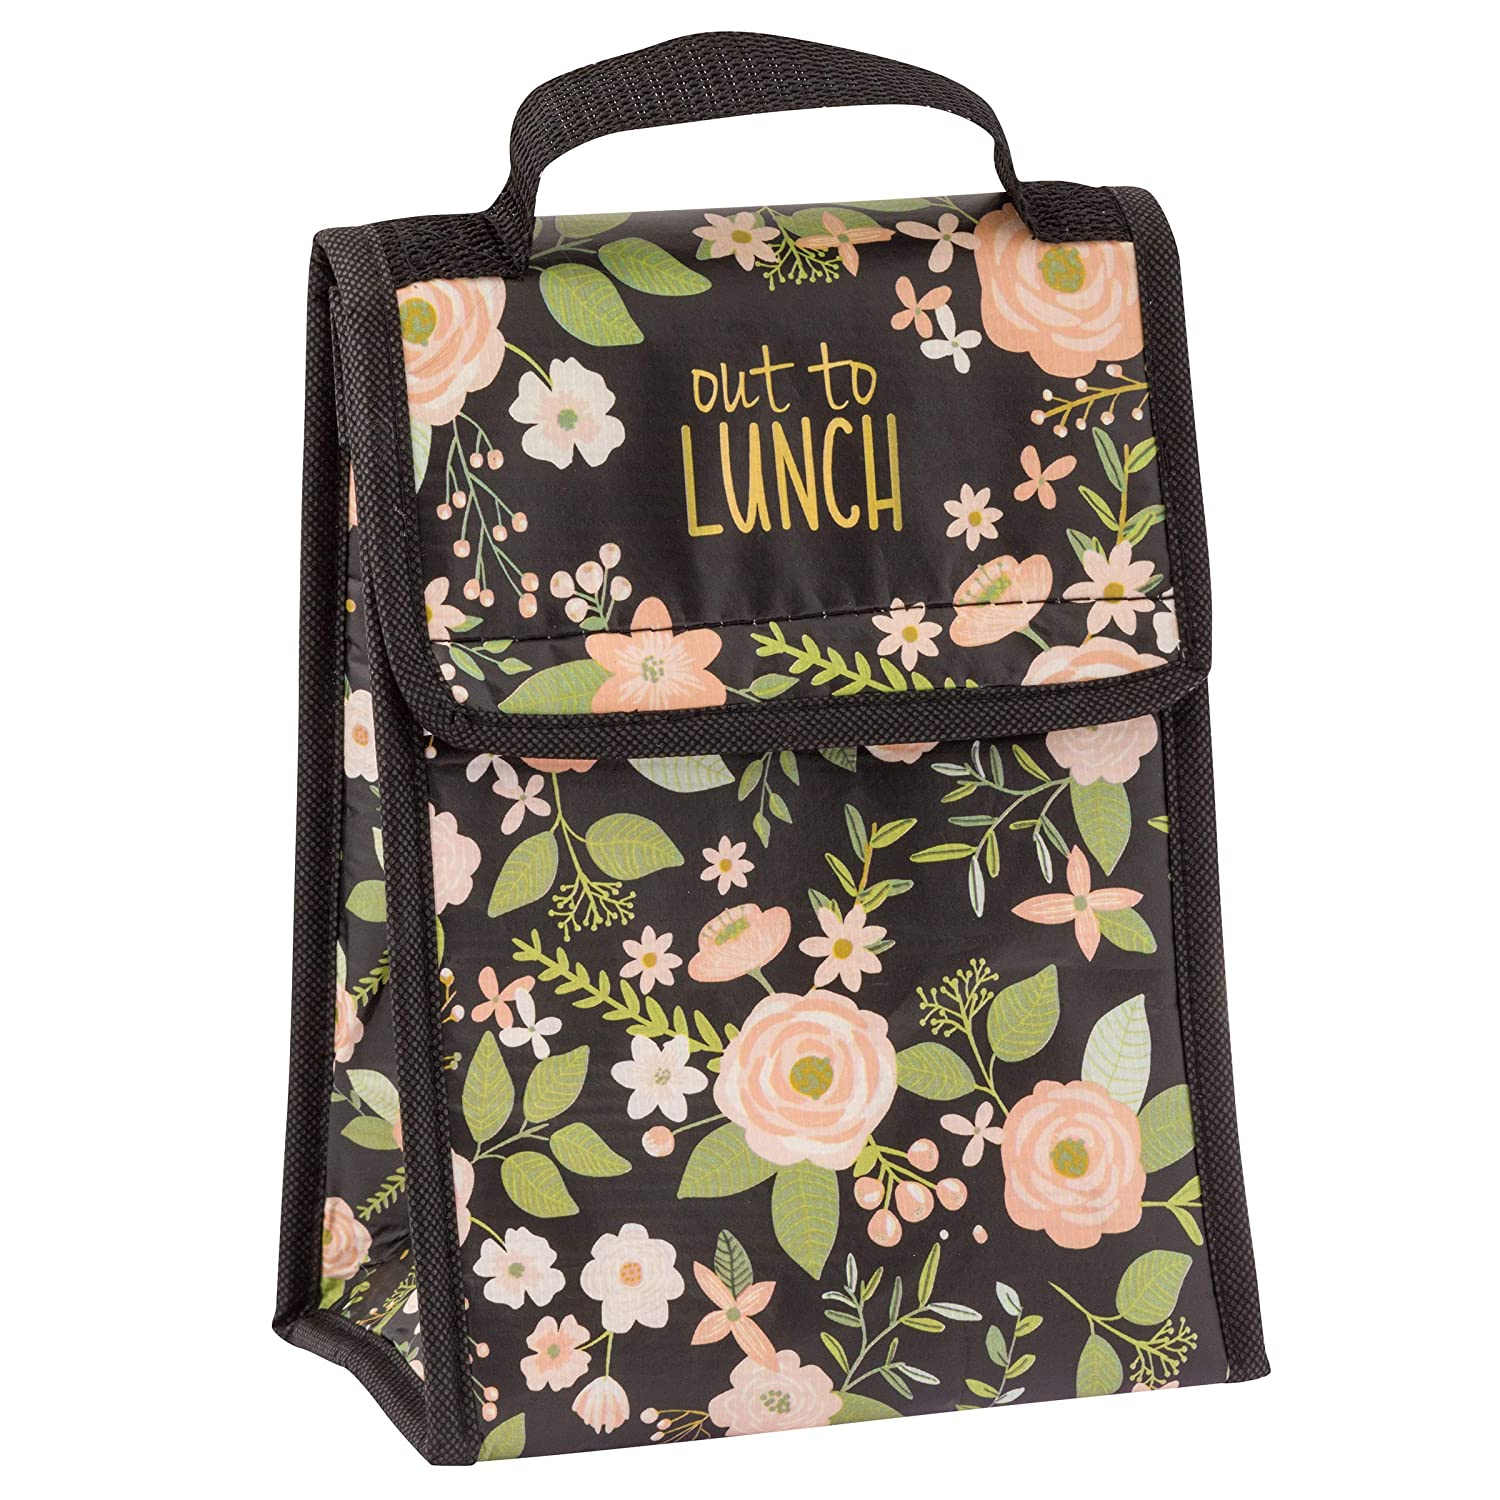 8c8fd898e677 Karma Gifts Lunch Sack, Charcoal Flower